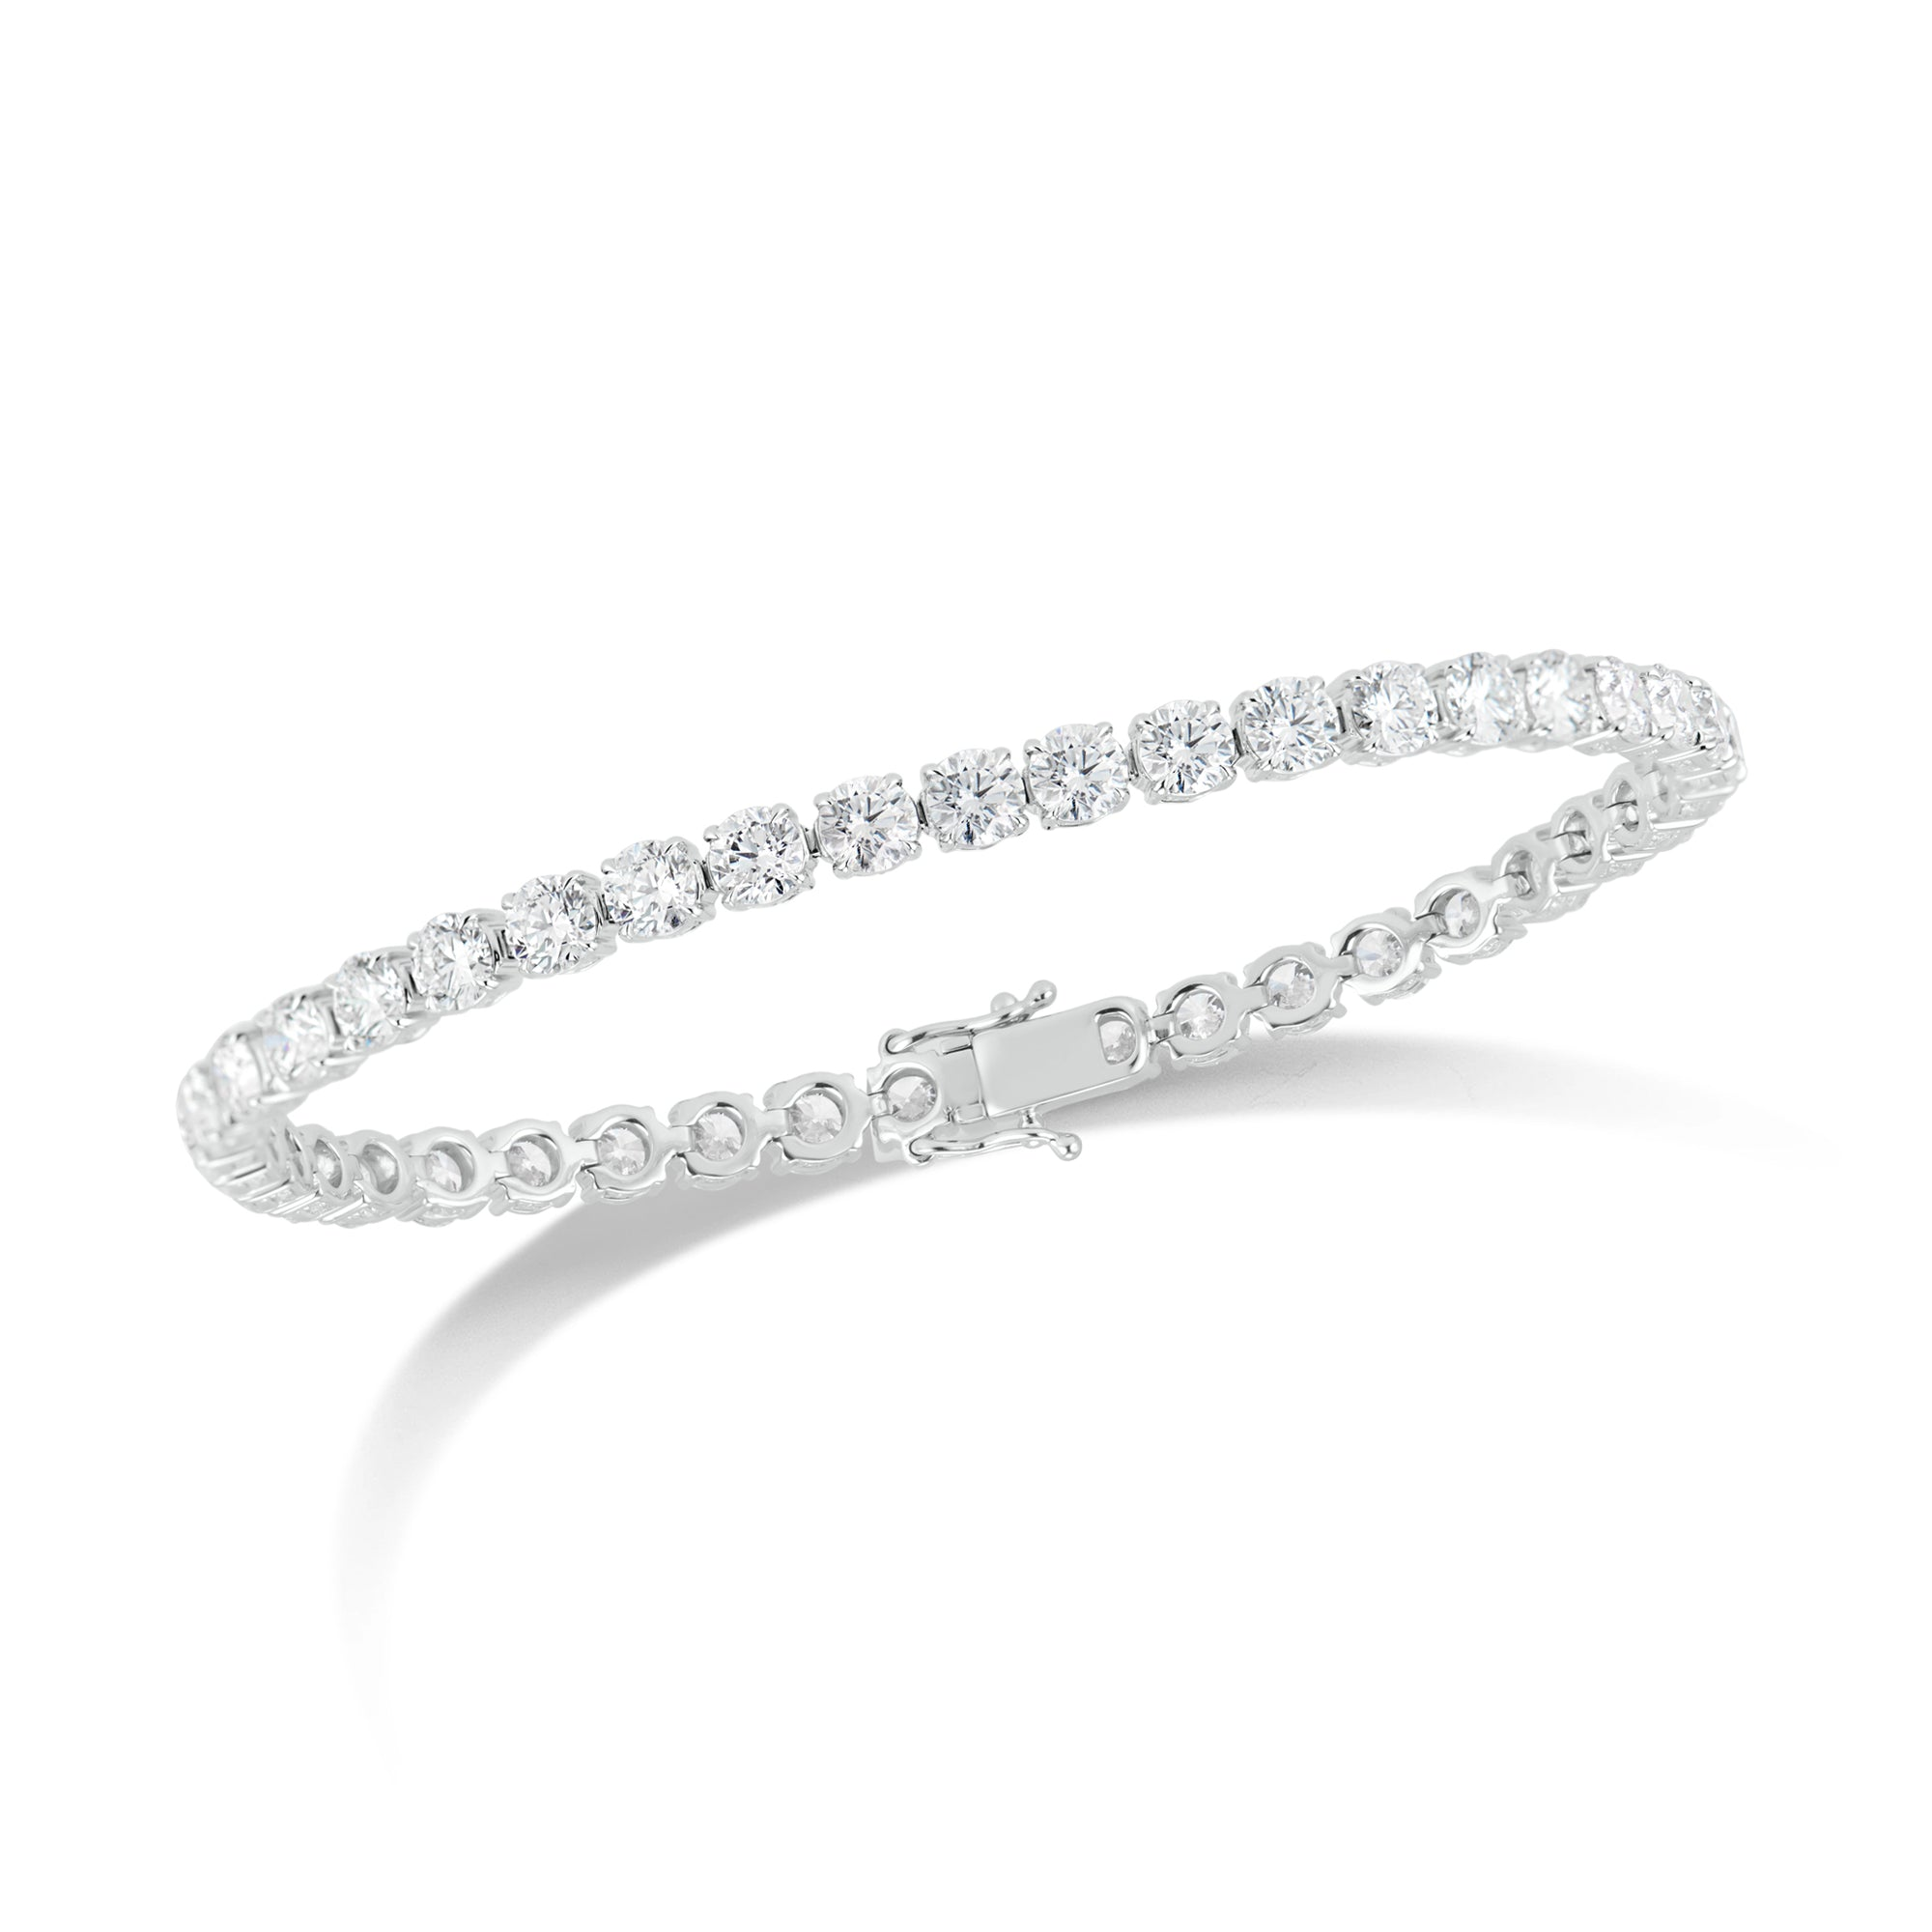 10 ct Diamond Tennis Bracelet